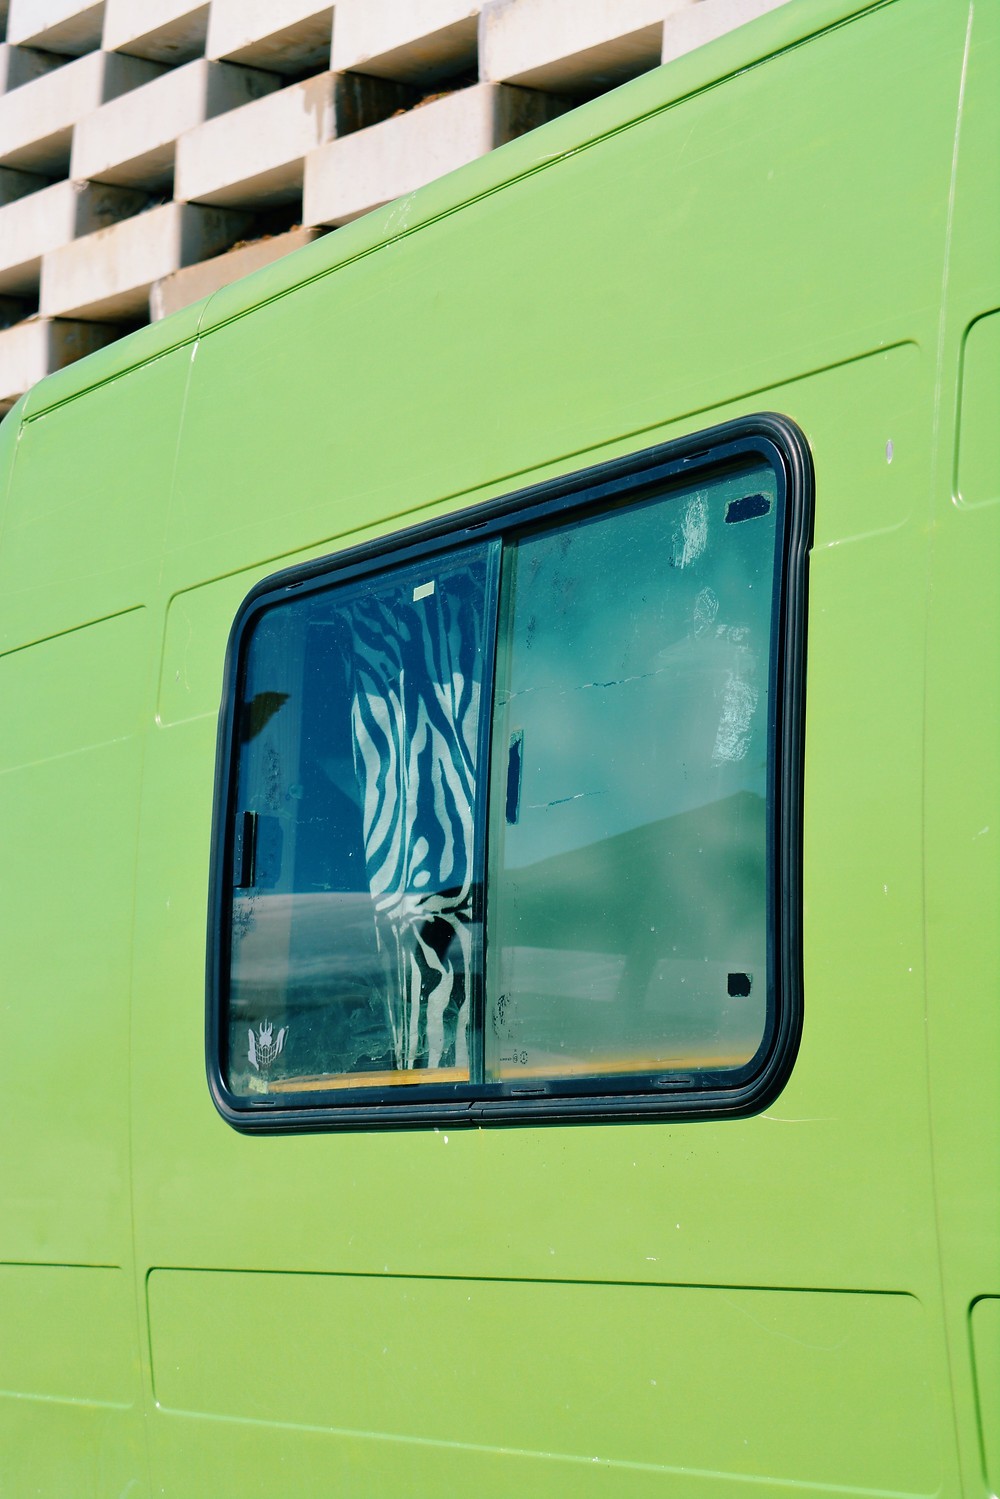 Close up of the window of a green van. A curtain with a zebra pattern can also be seen.